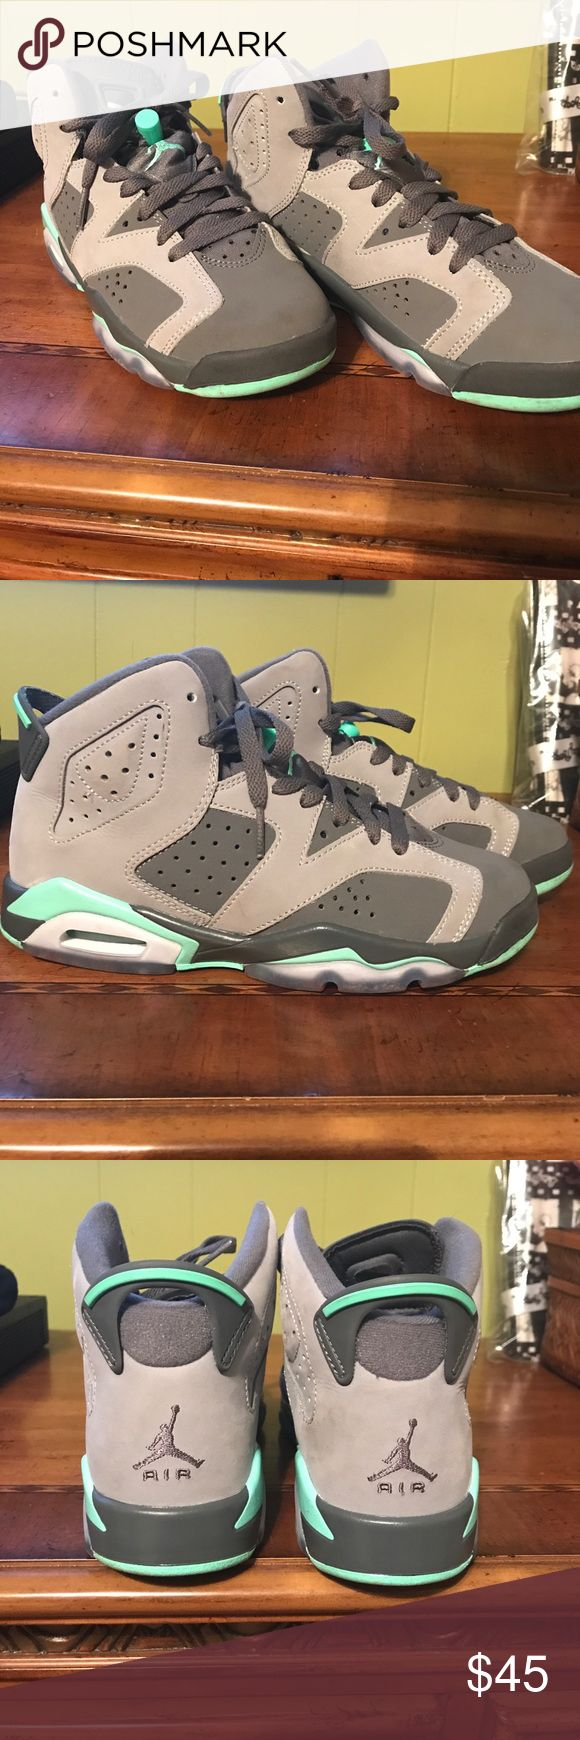 🔥🔥JORDANS 🔥🔥 🔥🔥JORDANS SIZE 4.5 COLOR GRAY,MINT GREEN ALL MY SONS SNEAKERS ARE ALL AUTHENTIC UESD A FEW TIMES LIKE NEW MY SON LOVES ❤️SNEAKERS Jordan Shoes Sneakers